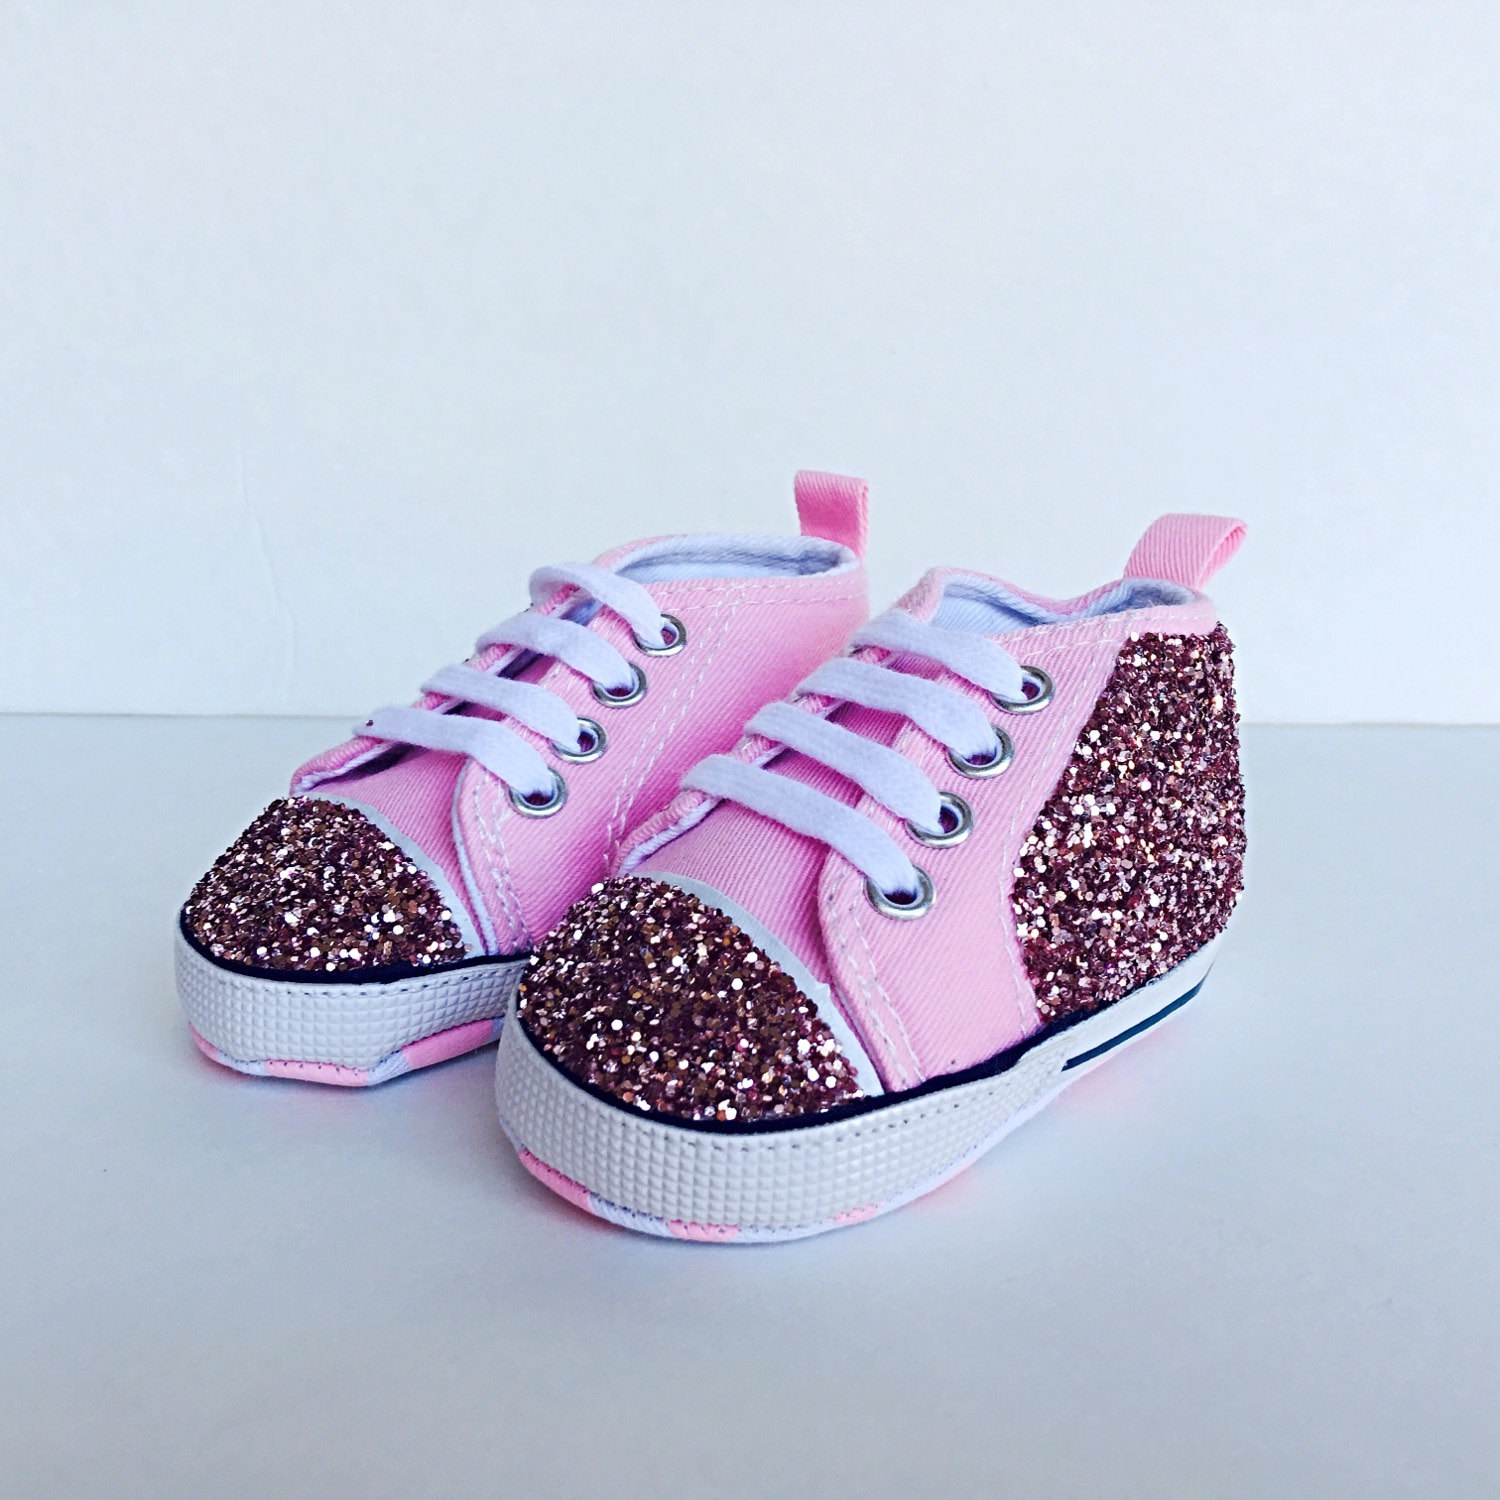 9ad8a59082e2 Baby Glitter Shoes - Pink Kids Chucks - Bubblegum Light Pink ...